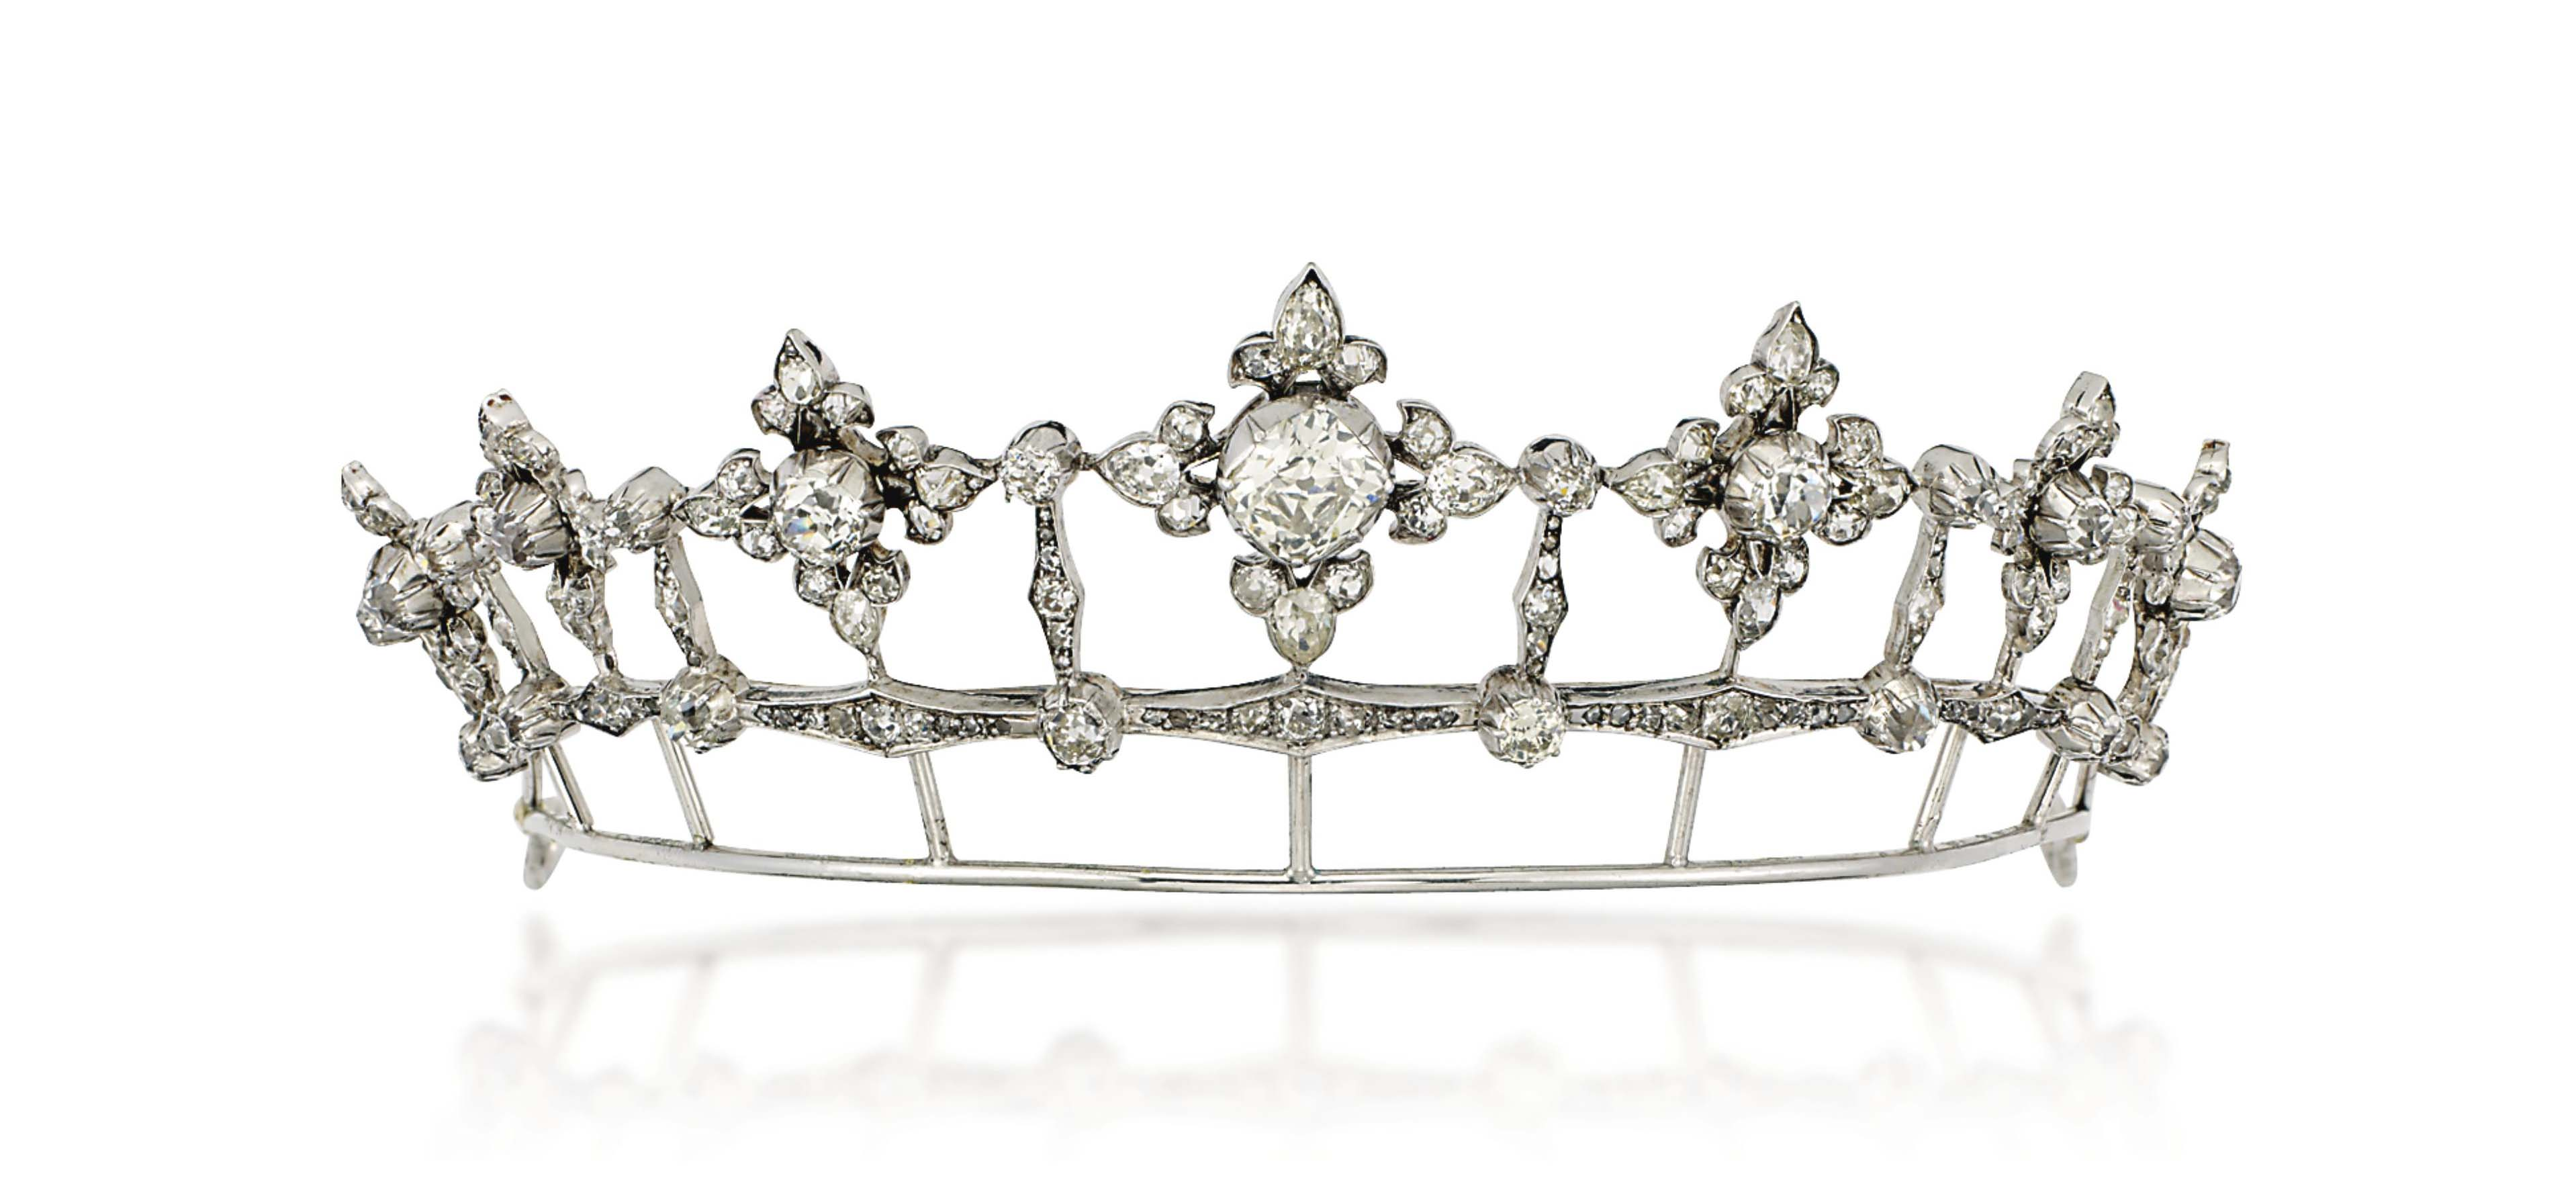 A 19TH CENTURY DIAMOND TIARA